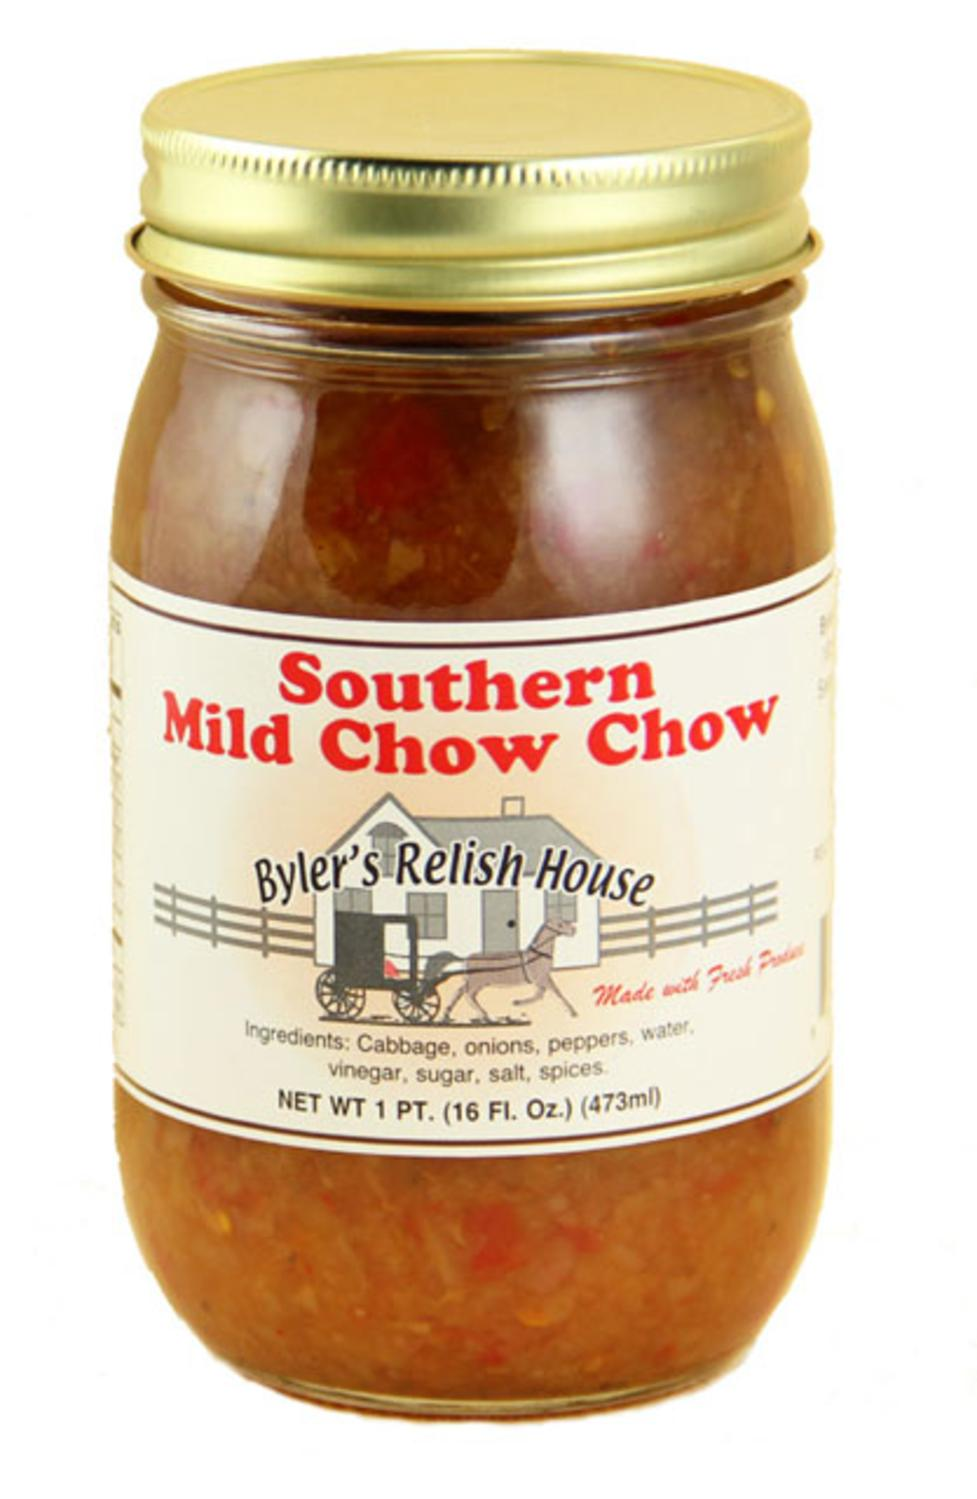 Byler's Relish House Homemade Amish Country Southern Mild Chow Chow 16 oz. by Byler's Relish House